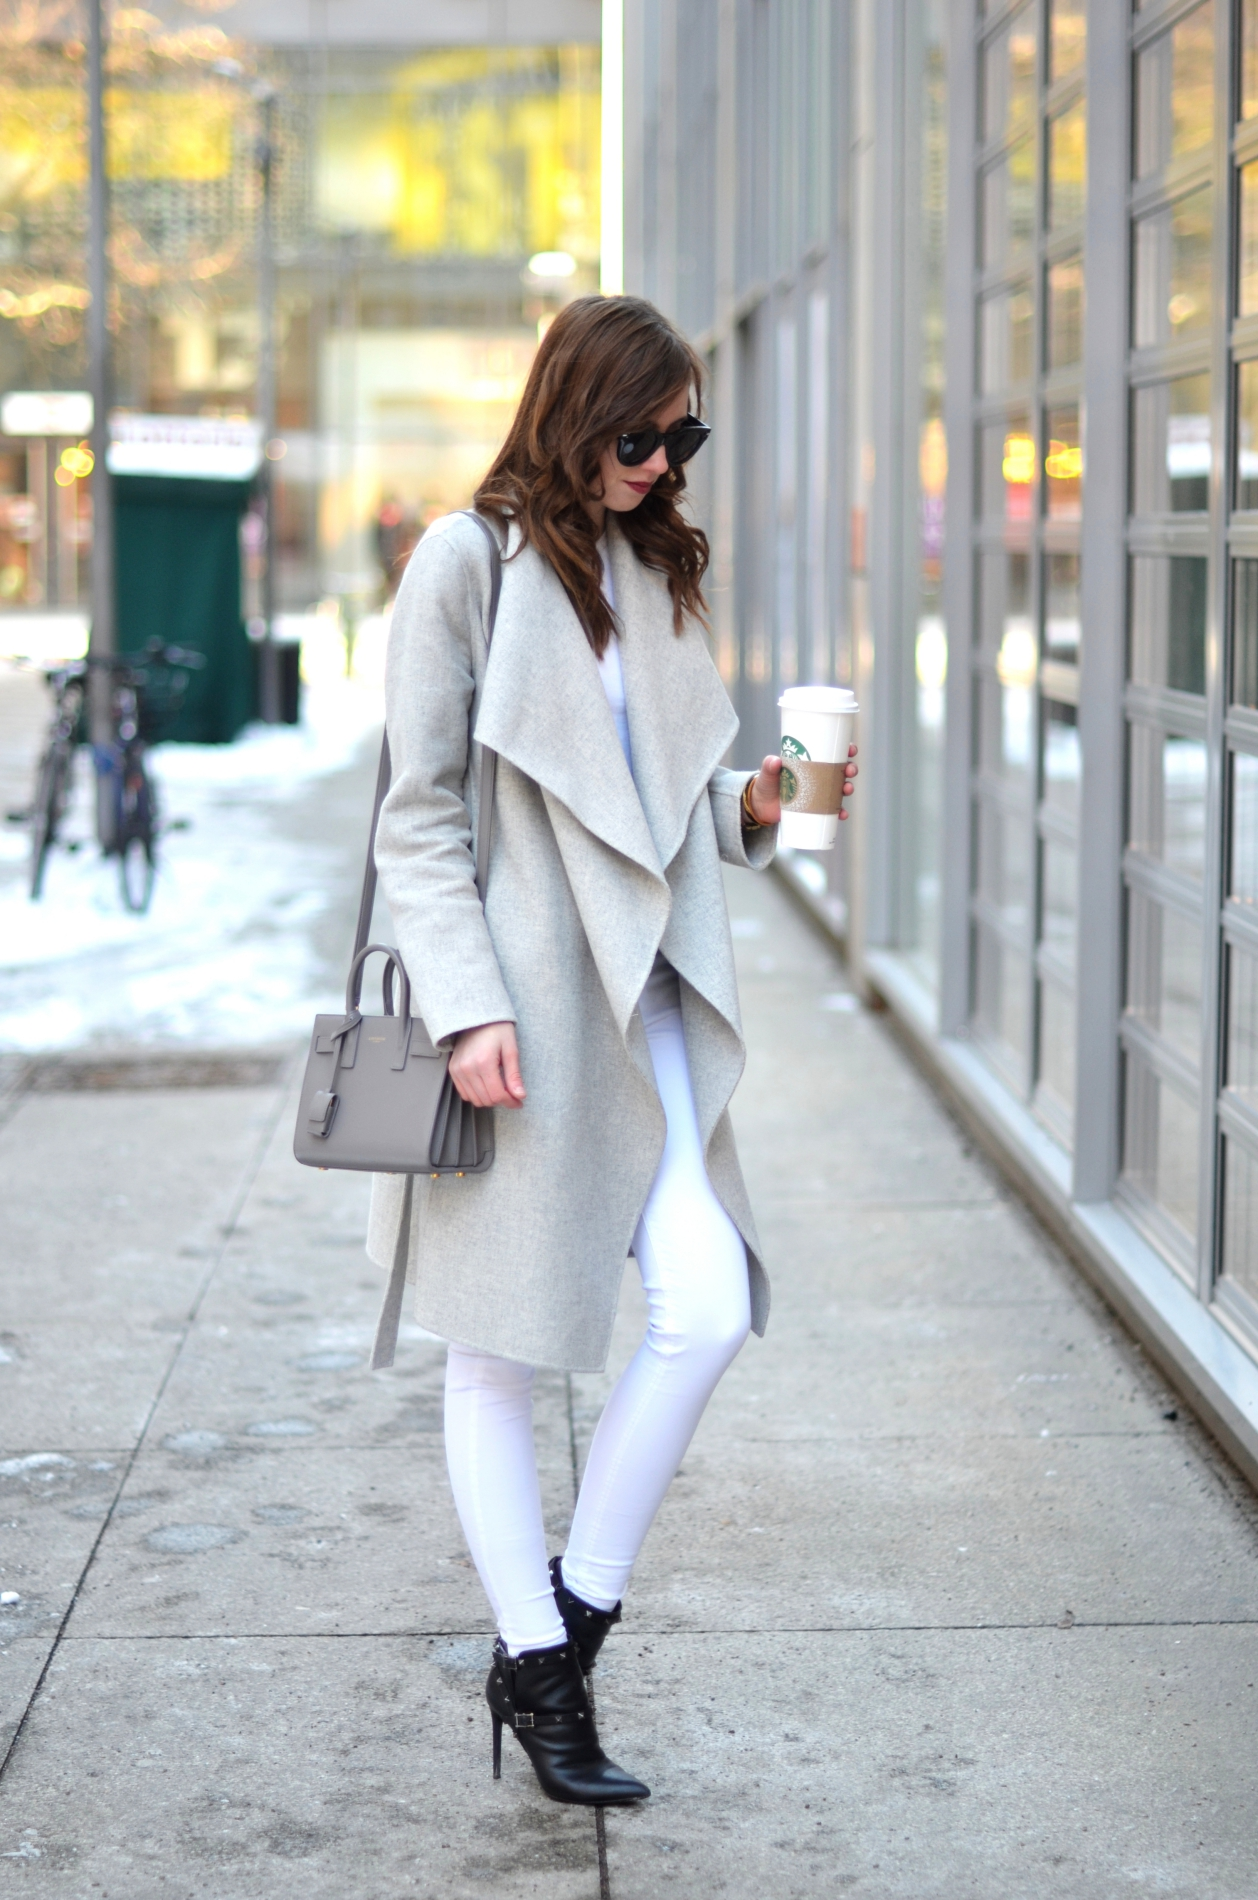 Barbora Ondrackova looks ultra sleek in this white jeans outfit consisting of a pale beige wrap coat and heeled ankle boots. These pieces make a winning combination which is perfect for a simple winter look! Top: Acne, Jeans: Mango, Coat: Zara, Bag: Saint Laurent, Boots: Valentino.